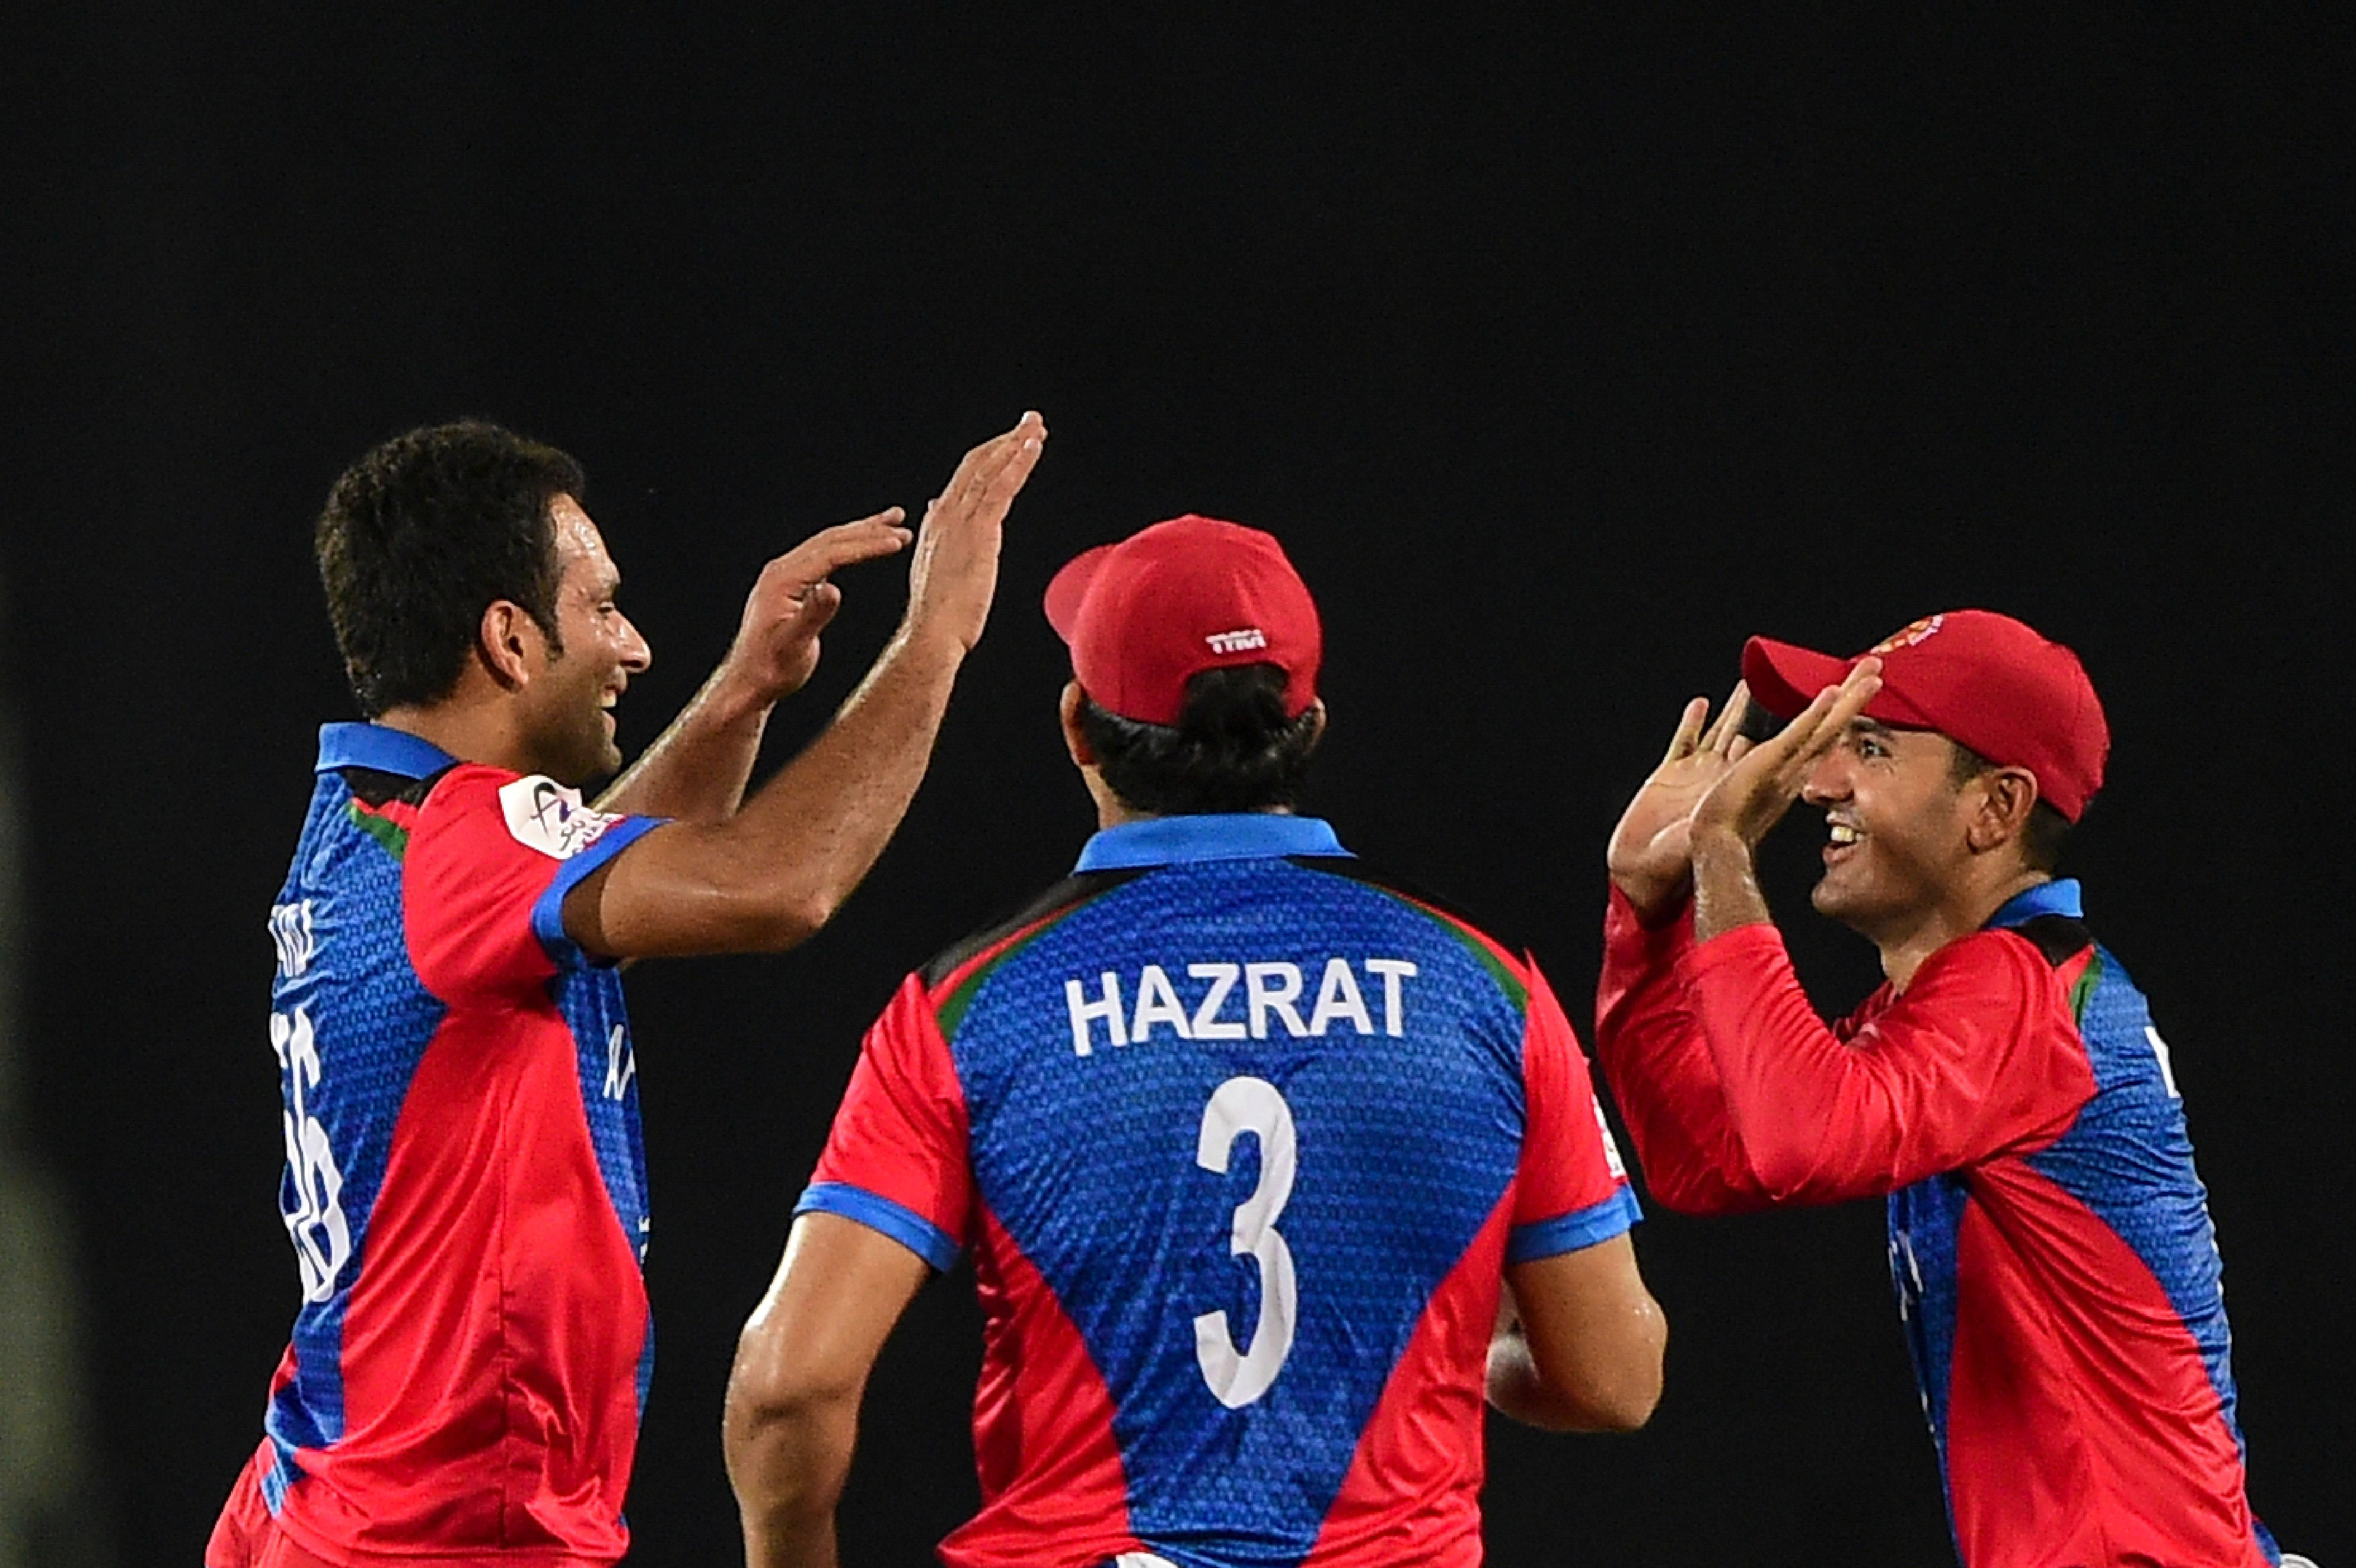 Bangladesh and Afghanistan compete to keep winning record